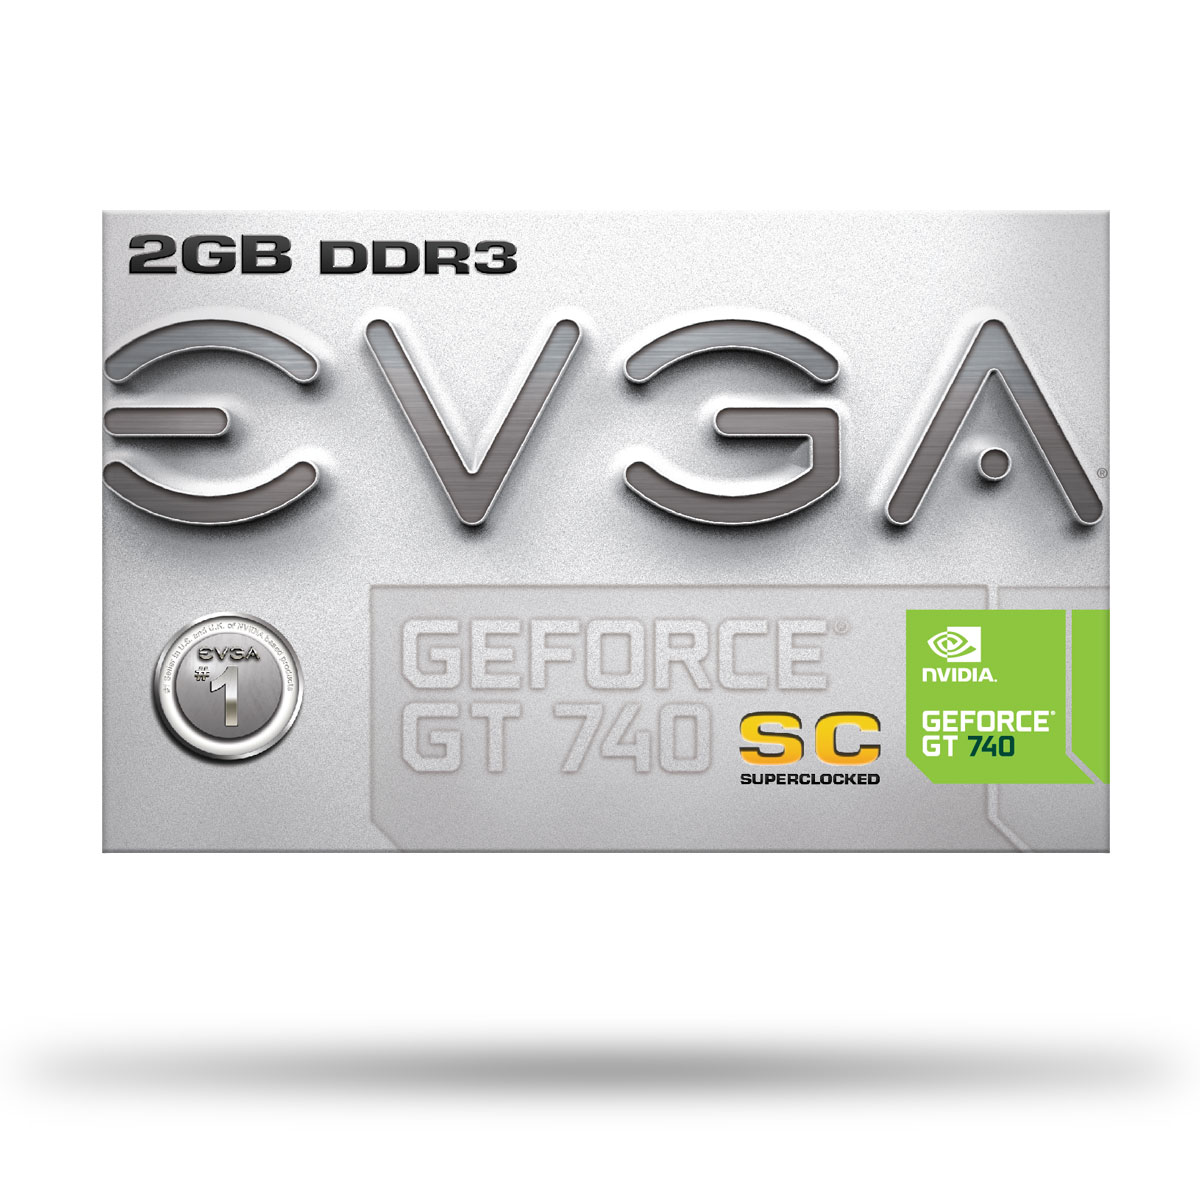 Placa de Vídeo Geforce GT740 2GB DDr3 128Bits 02G-P4-2742-KR - EVGA